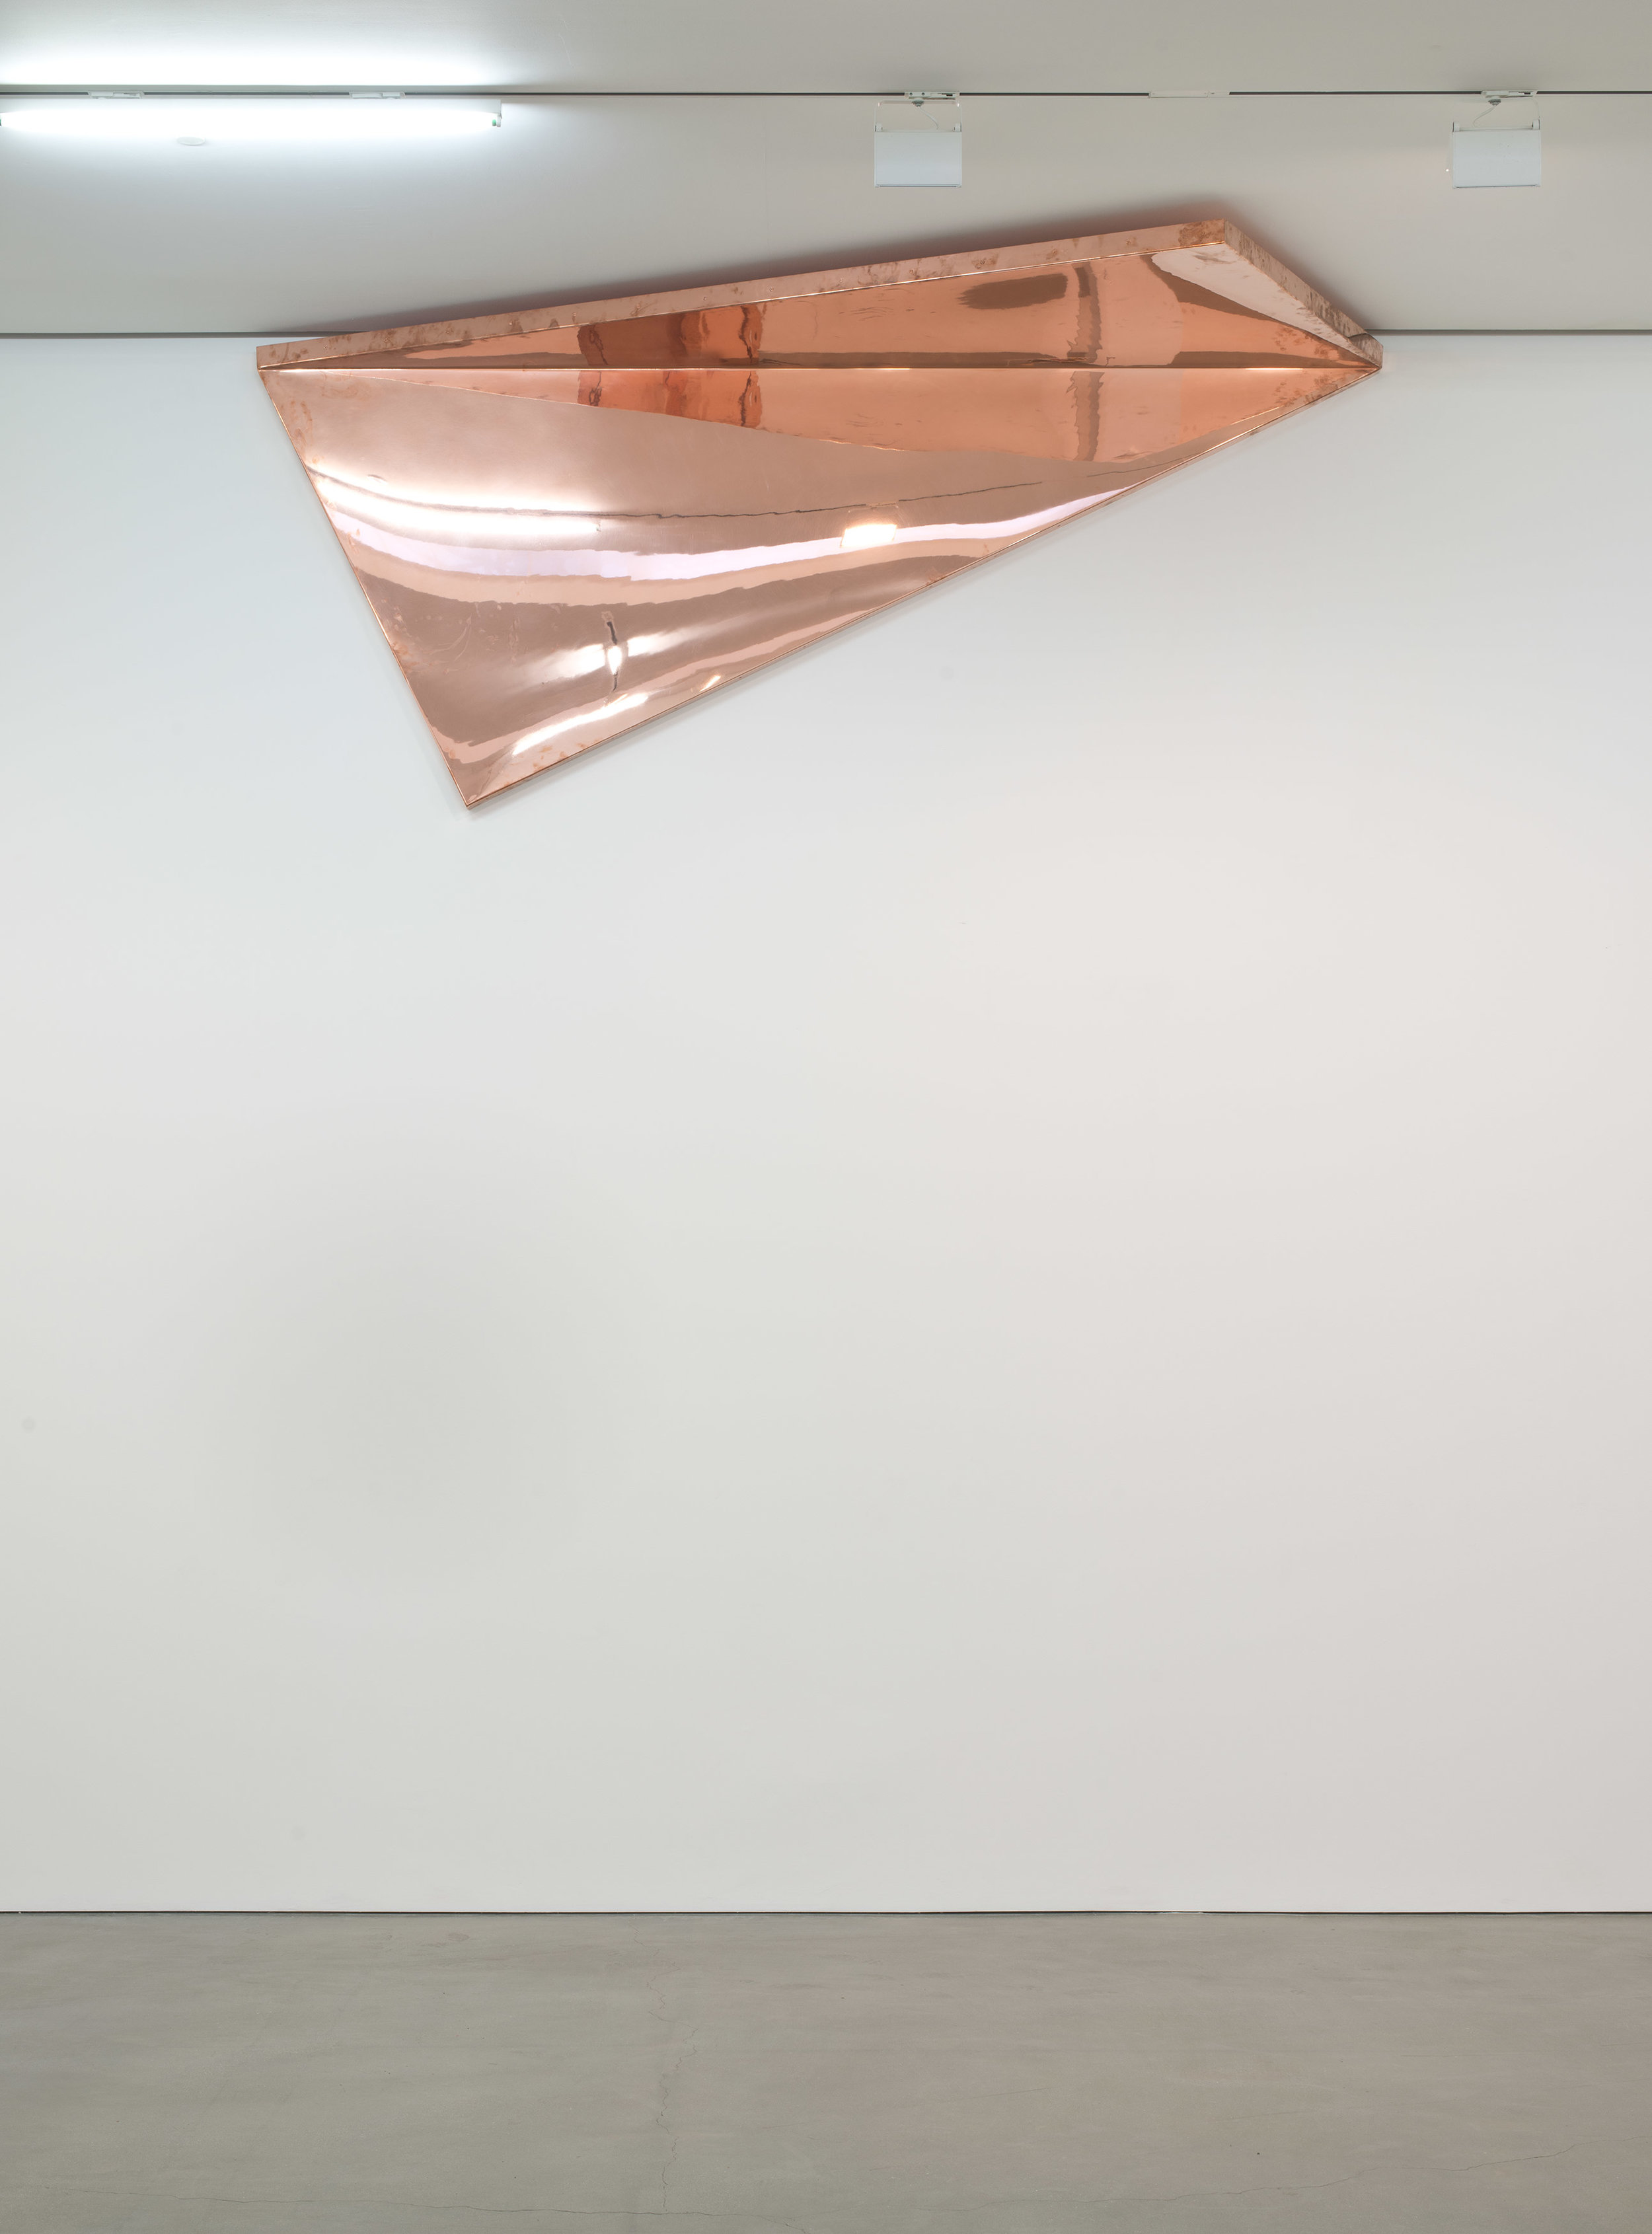 """Copper Surrogate (60"""" x 120"""" 48 ounce C11000 Copper Alloy, 90º Bend, 127 1/2""""30º Diagonal / 150º Antidiagonal Bisection:February 20/April 5, 2014, Los Angeles, California)   2014  Polished copper  120 x 60 x 50 inches   Surrogates (Full Sheet, Art Handling), 2011–    Selected Bodies of Work, 2014"""